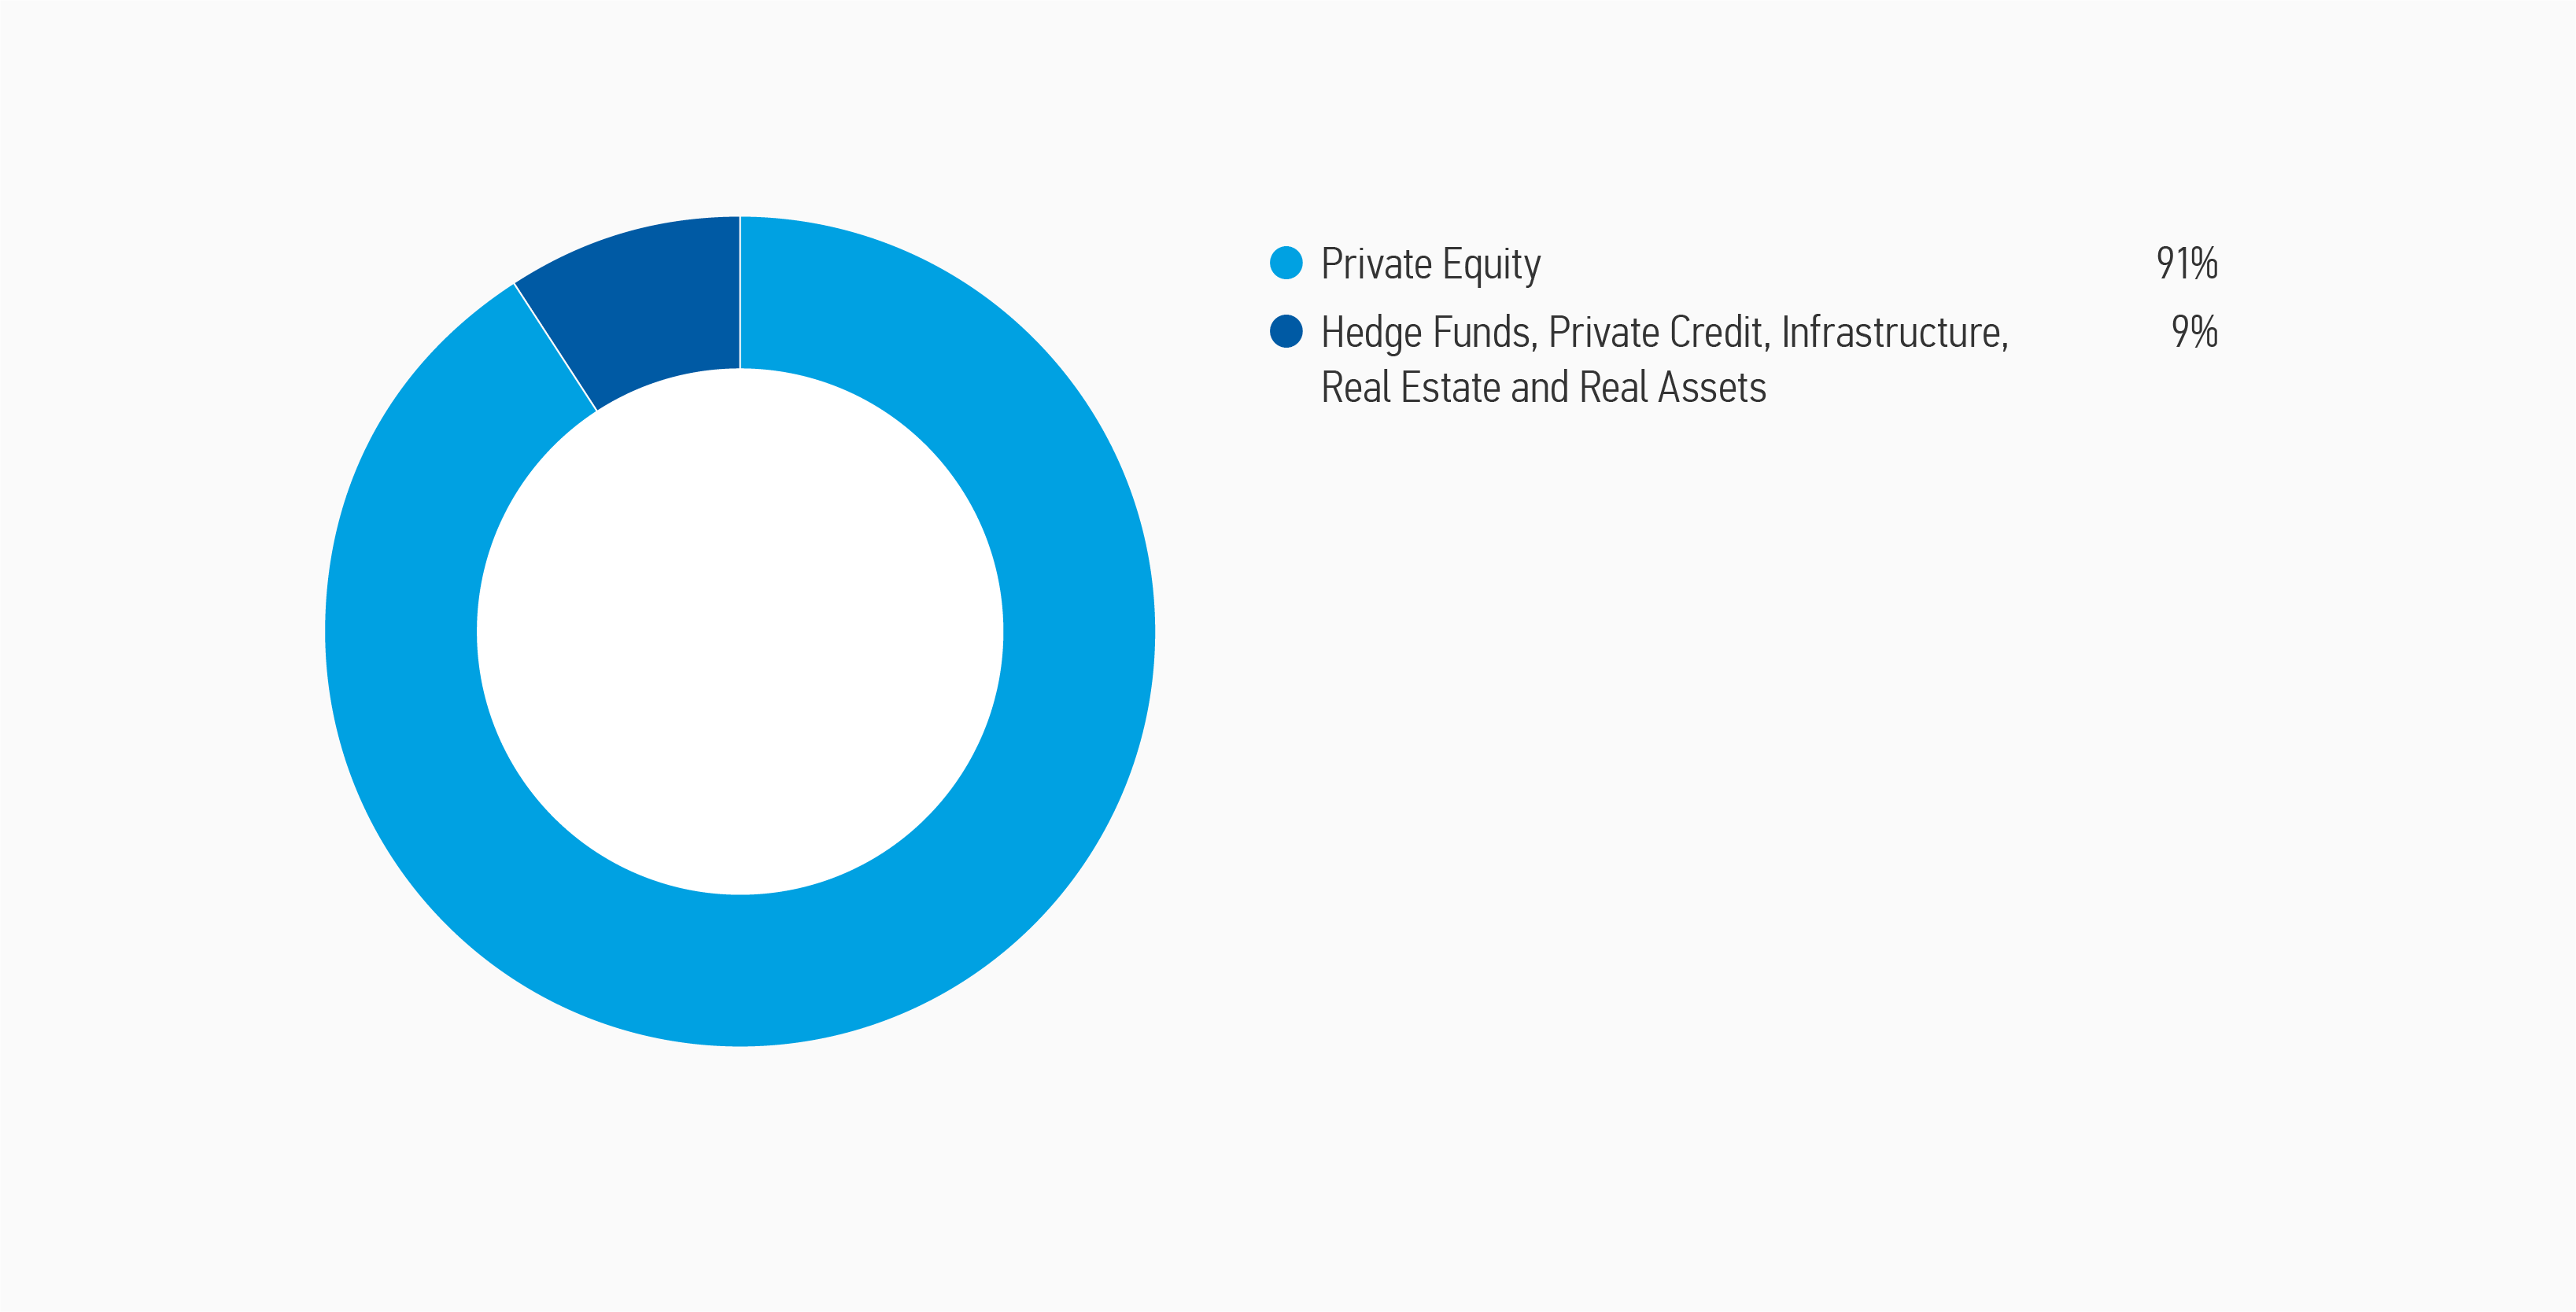 9991650_Web_Display_2